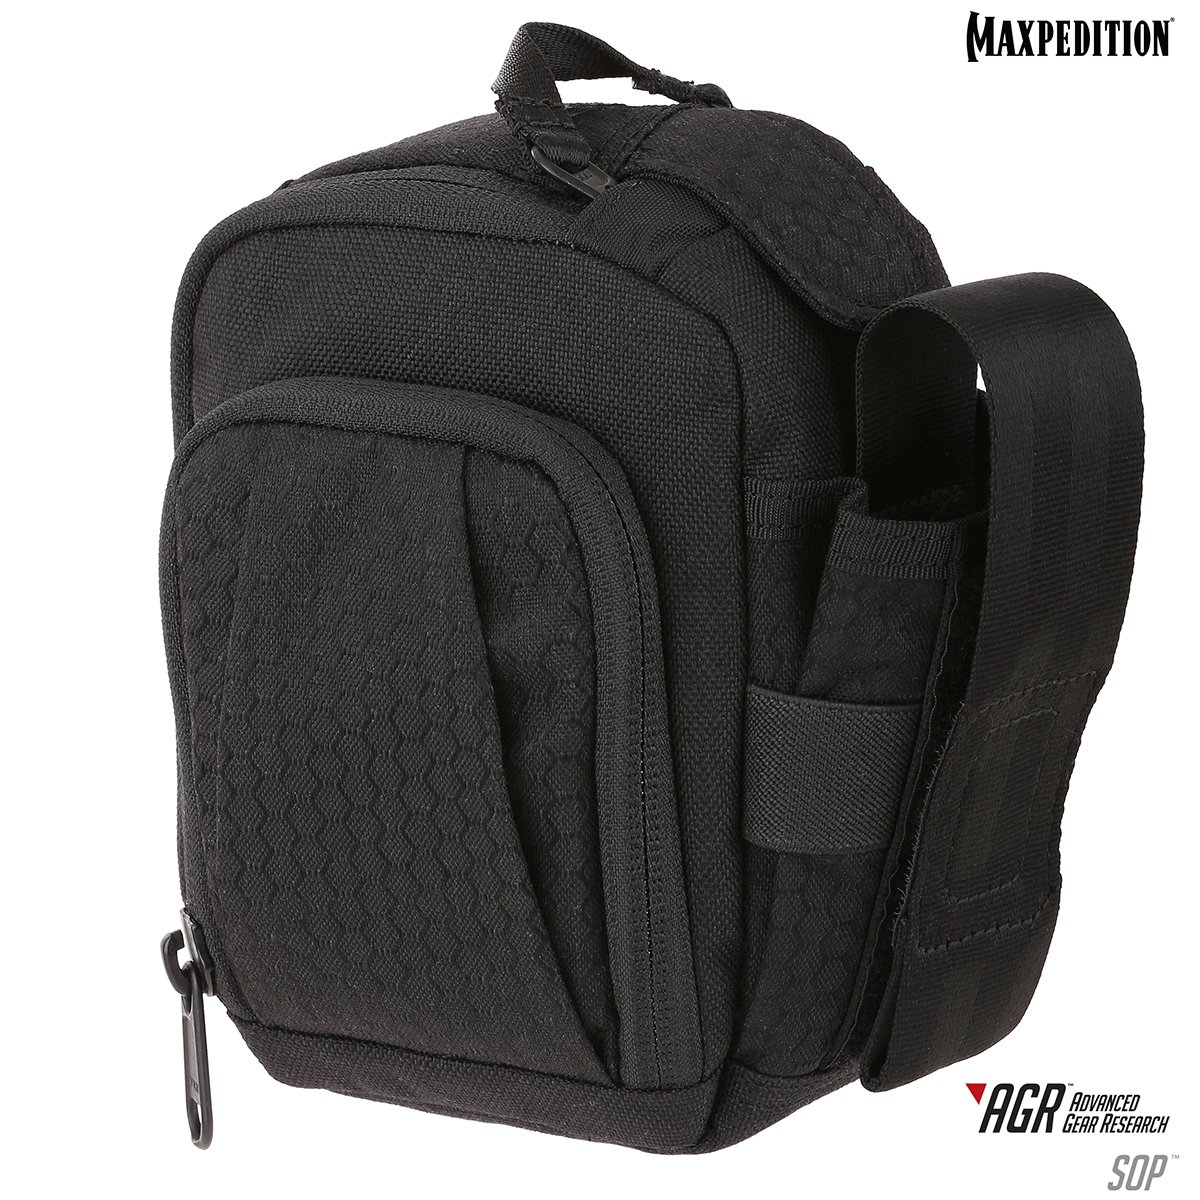 Maxpedition SOP Side Opening Pouch – Black